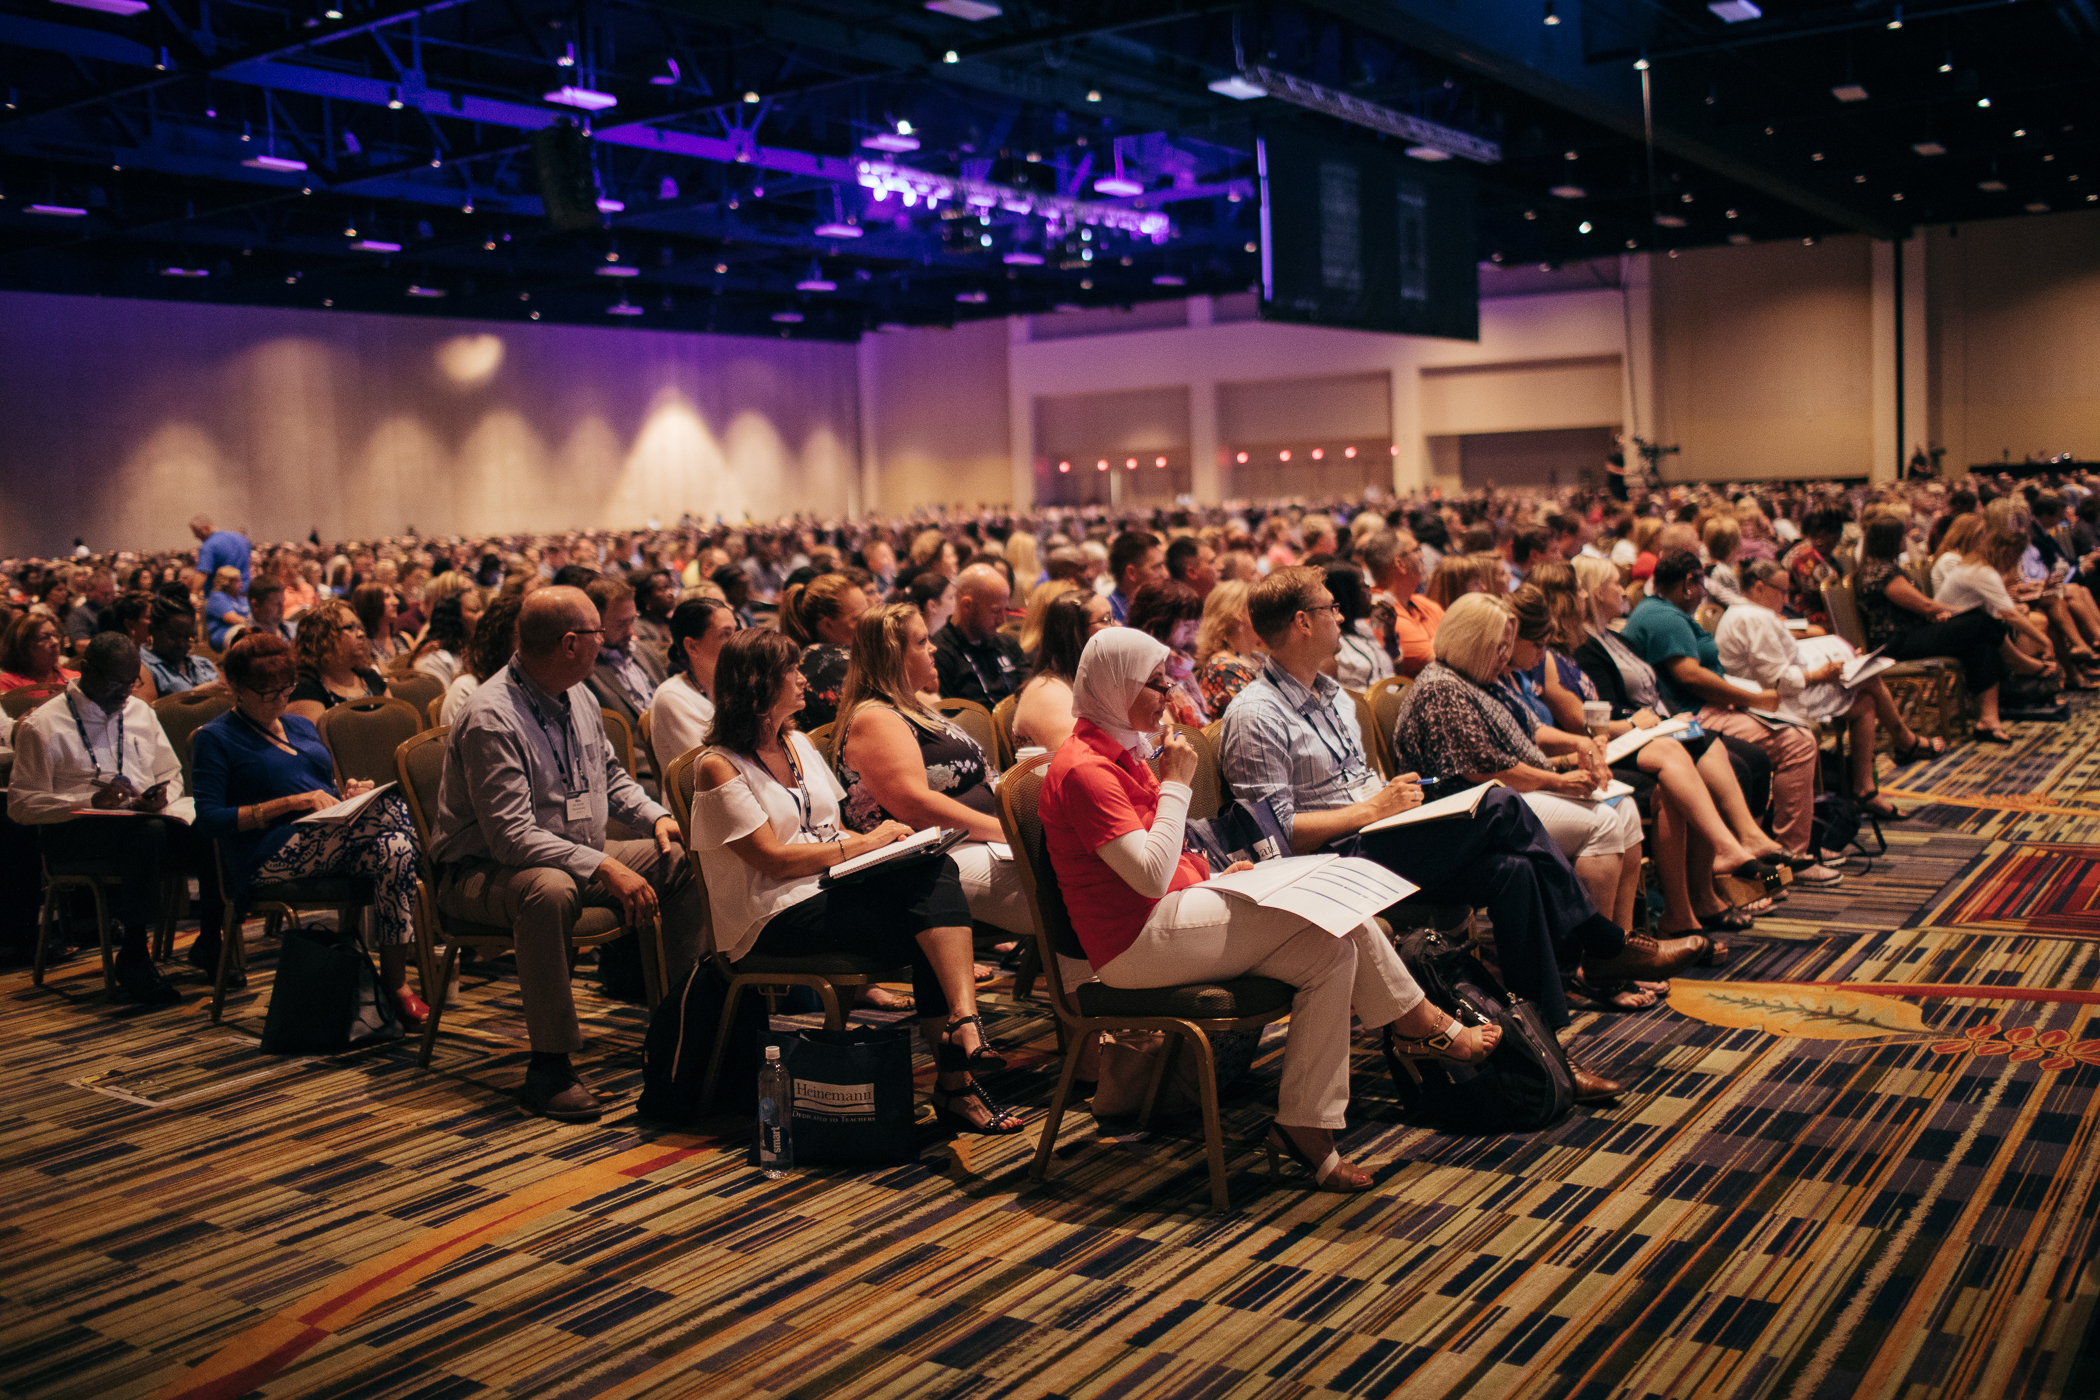 live event commercial photography brand storytelling for education florida conference photographer ©2018abigailbobophotography-35.jpg